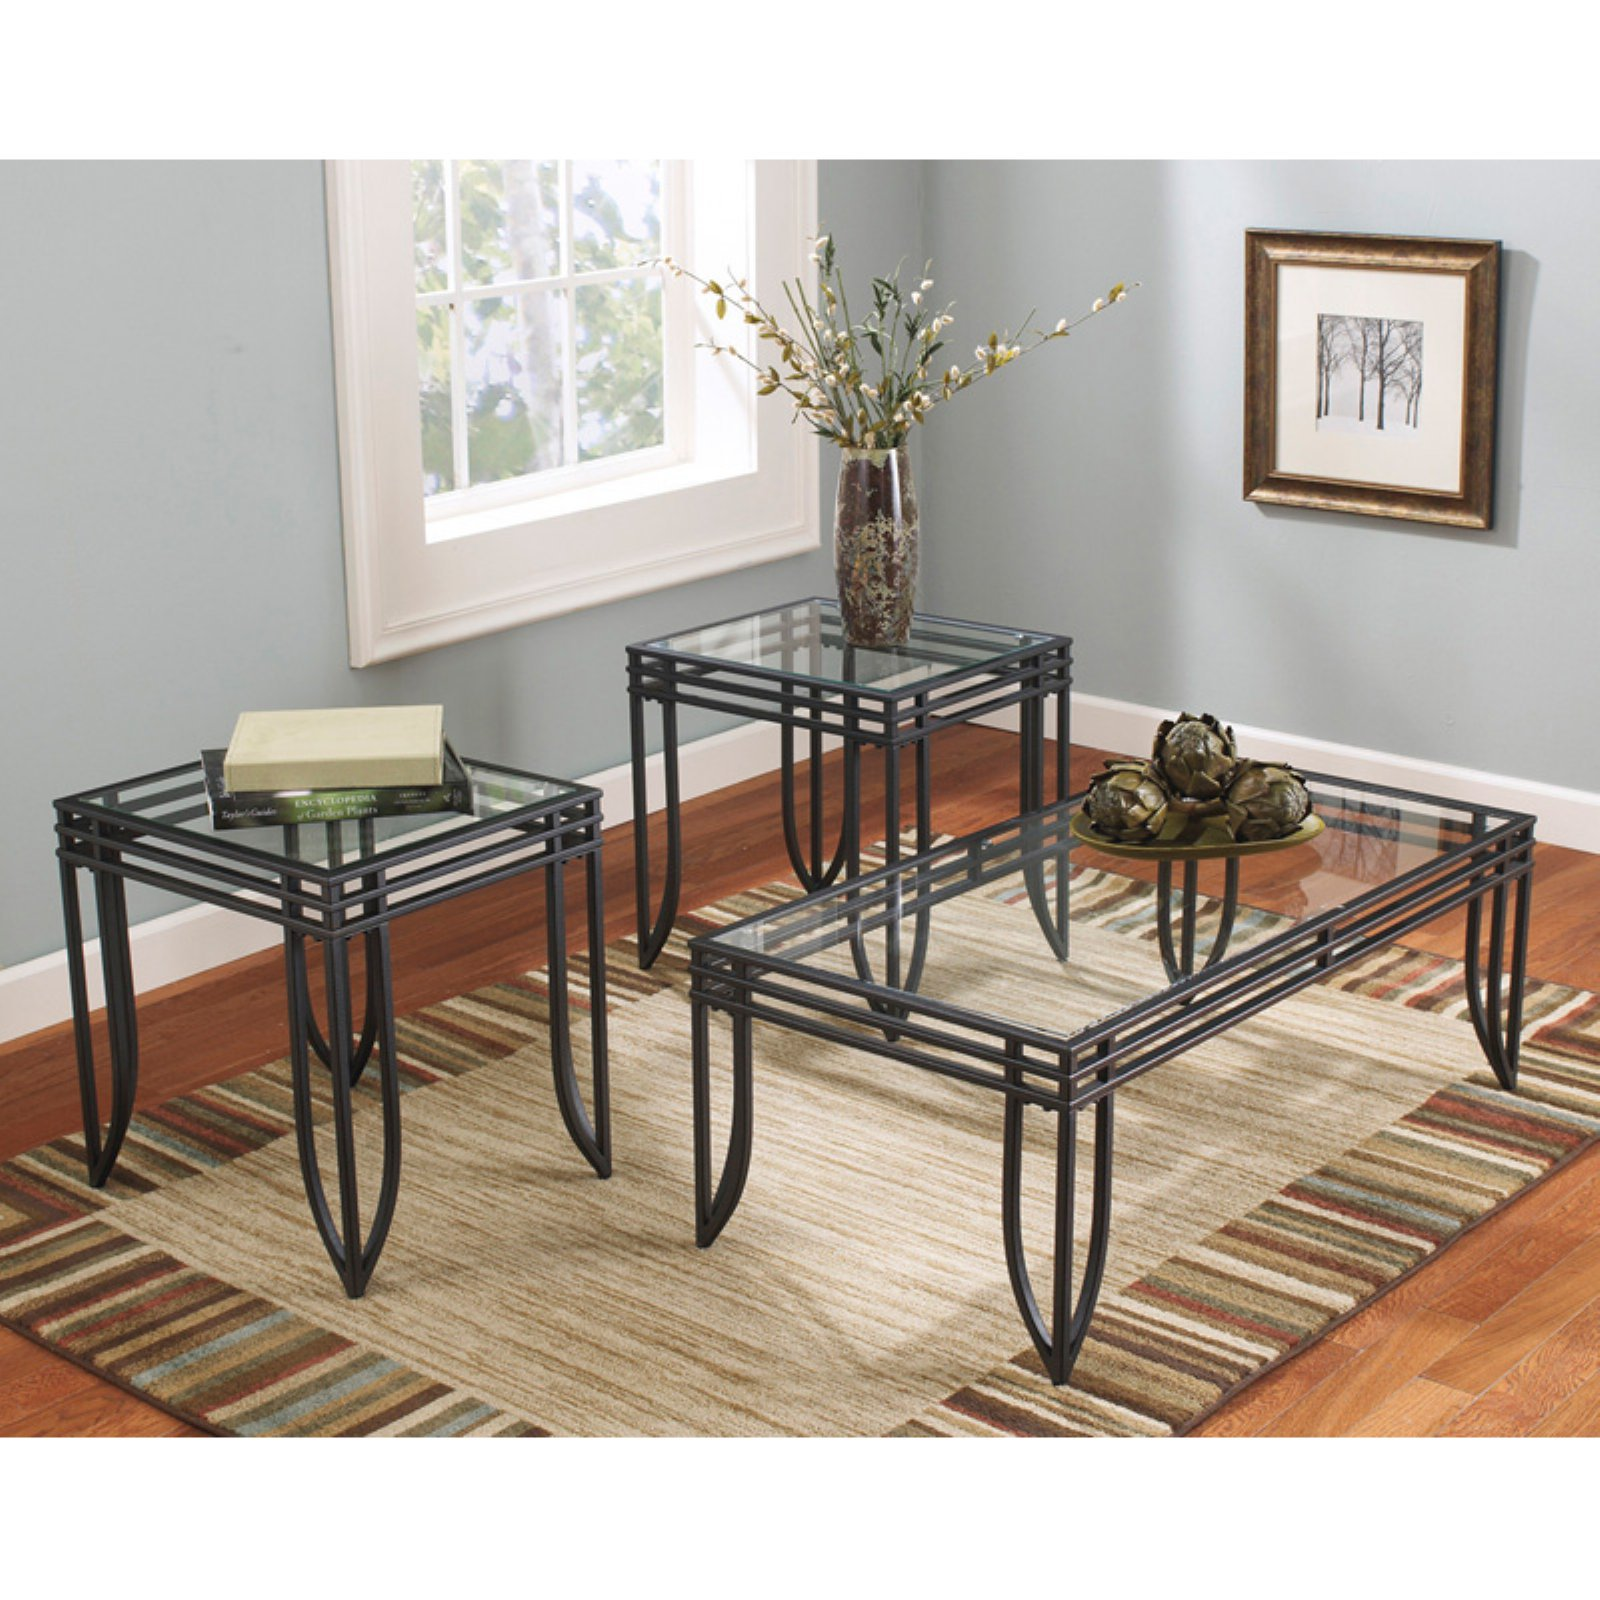 Roundhill Matrix 3 In 1 Accent Table Set With Black Metal Frame, 1 Coffee  Table